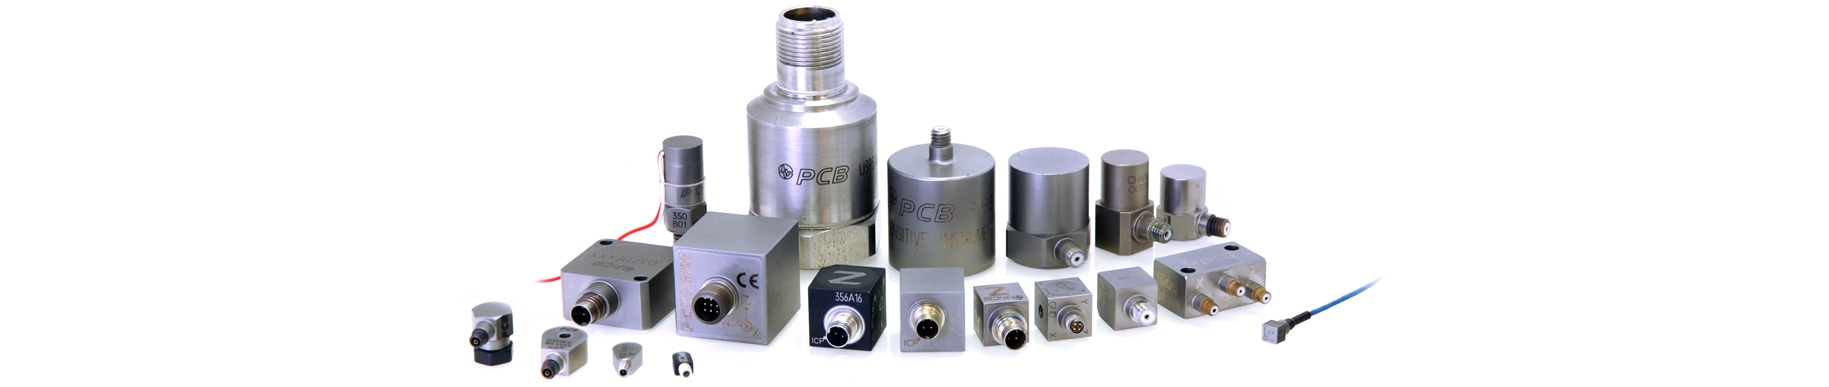 Accelerometers, Shock, Vibration sensors - DEWE Solutions    Ready